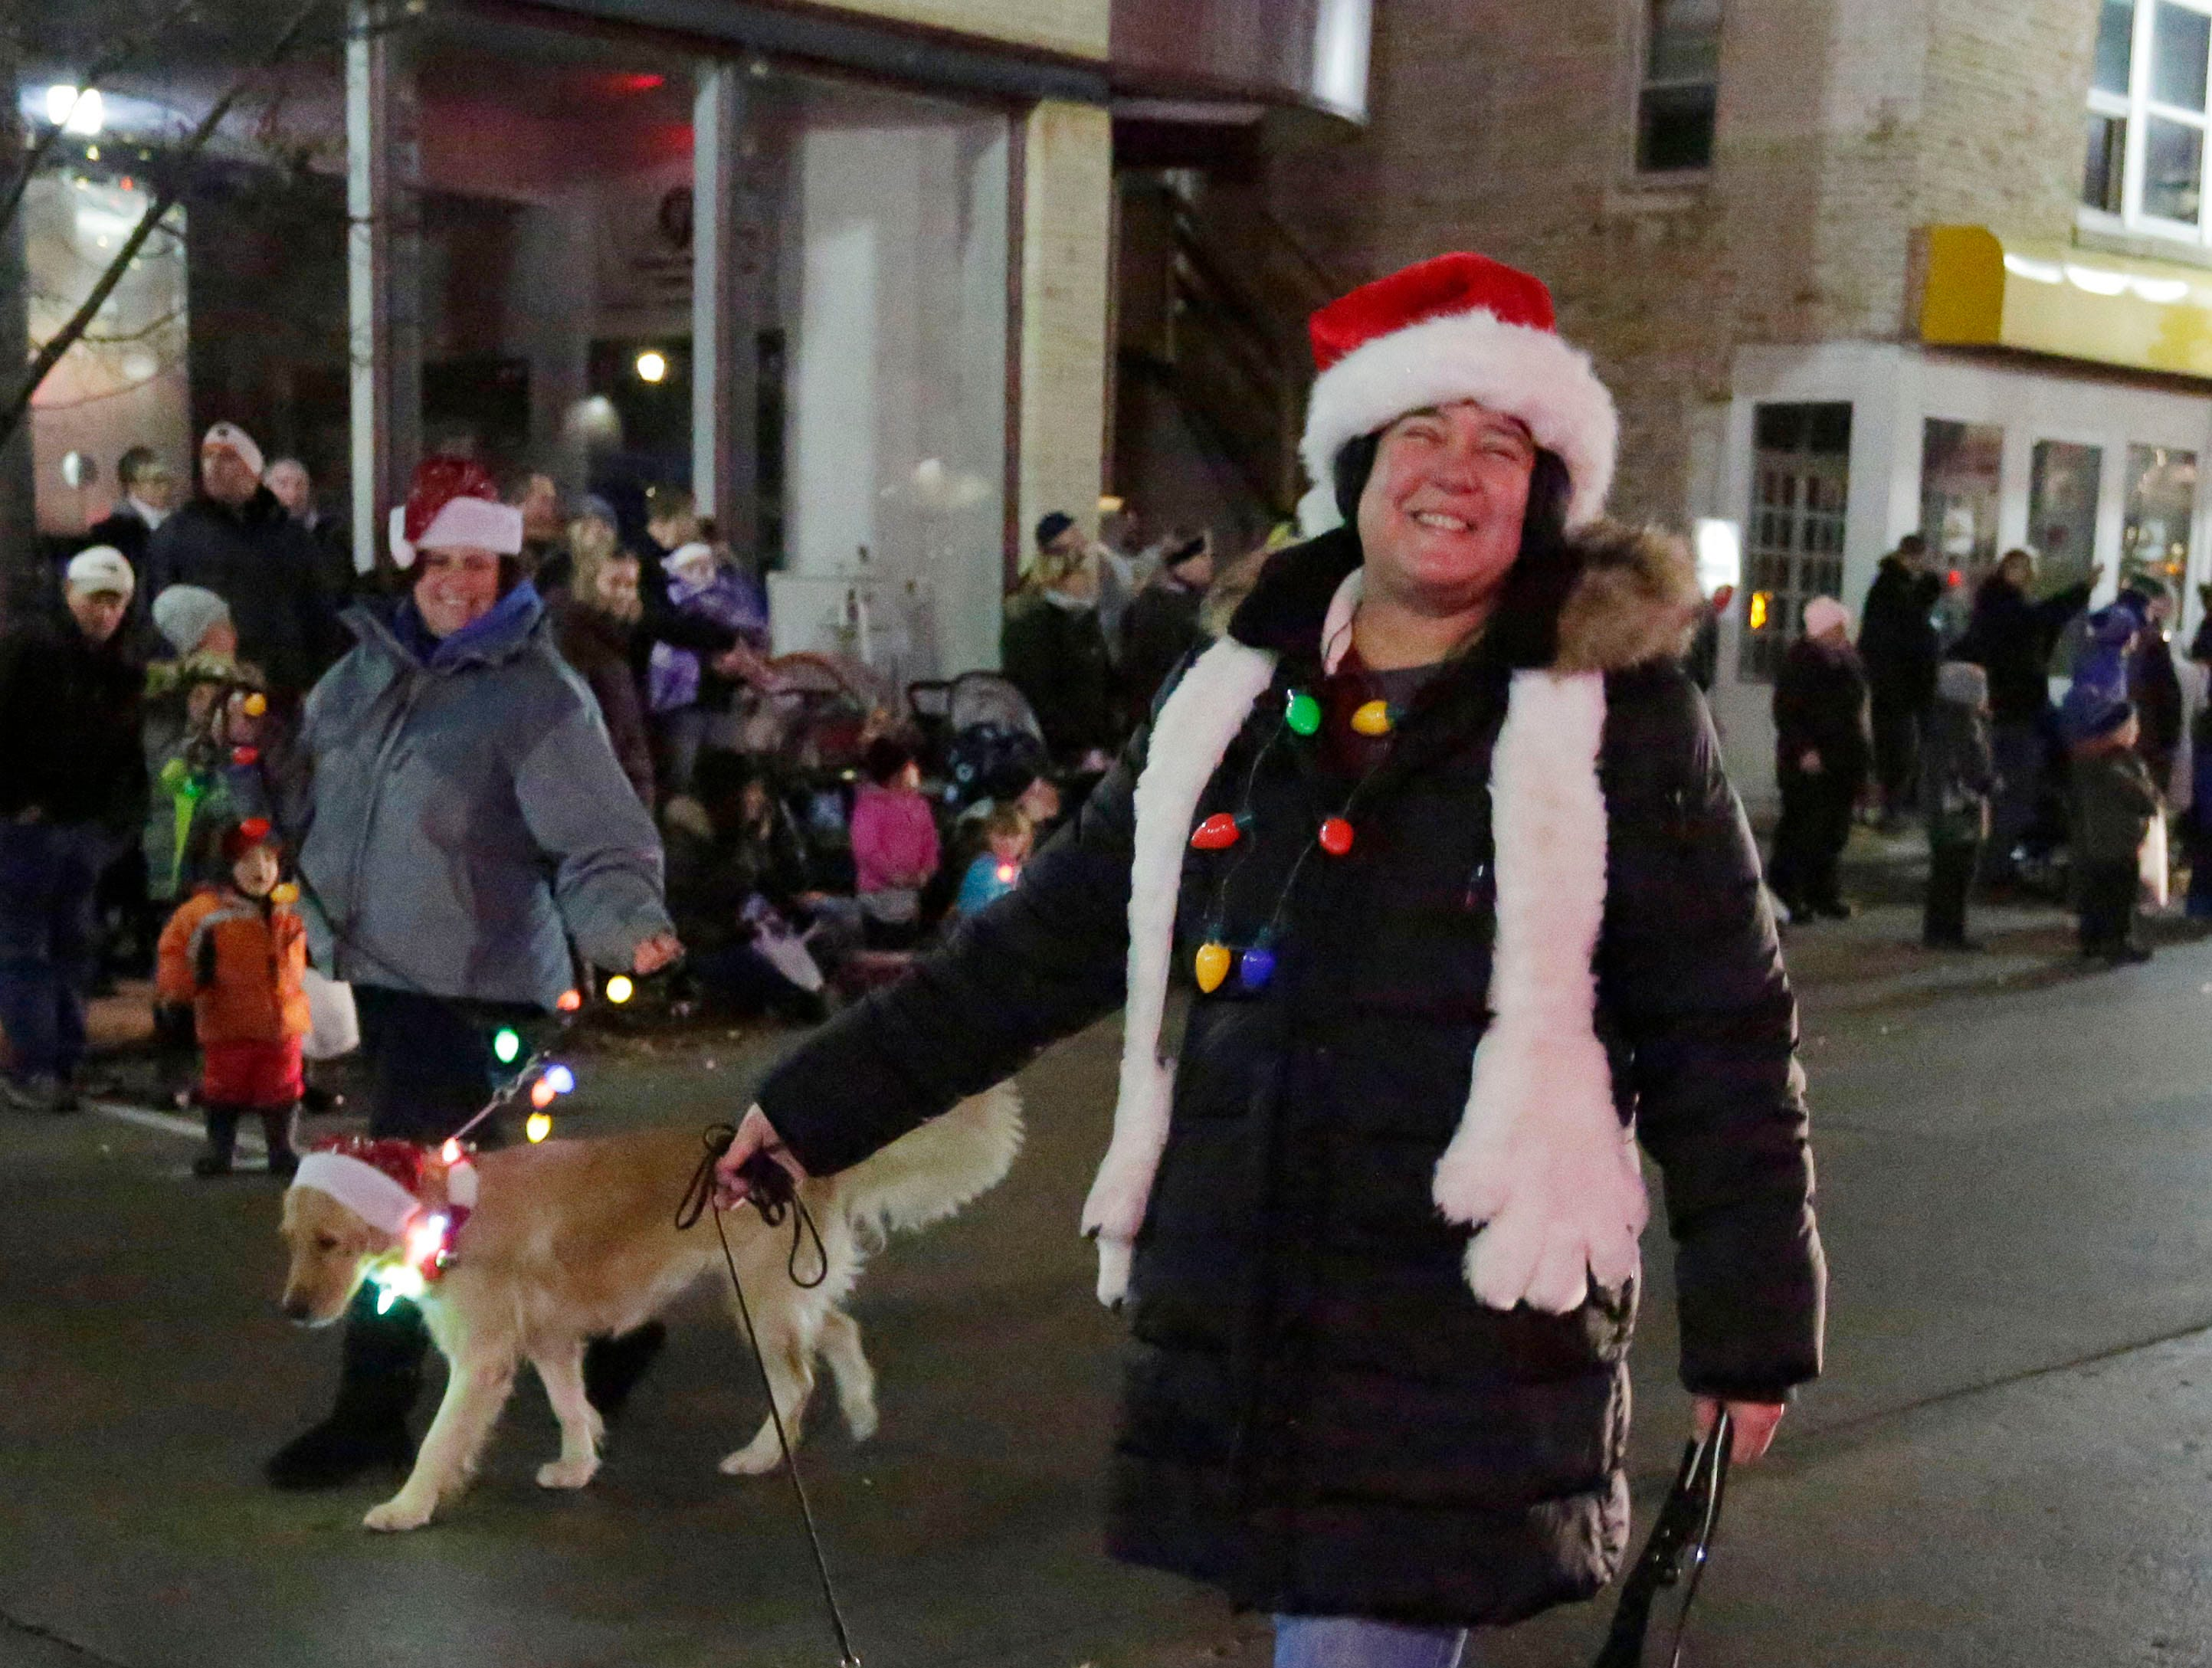 Sue Dempster of Sheboygan Falls smiles with her dogs who were decorated with holiday lights in the Plymouth Christmas Parade, Friday, November 23, 2018, in Plymouth, Wis.